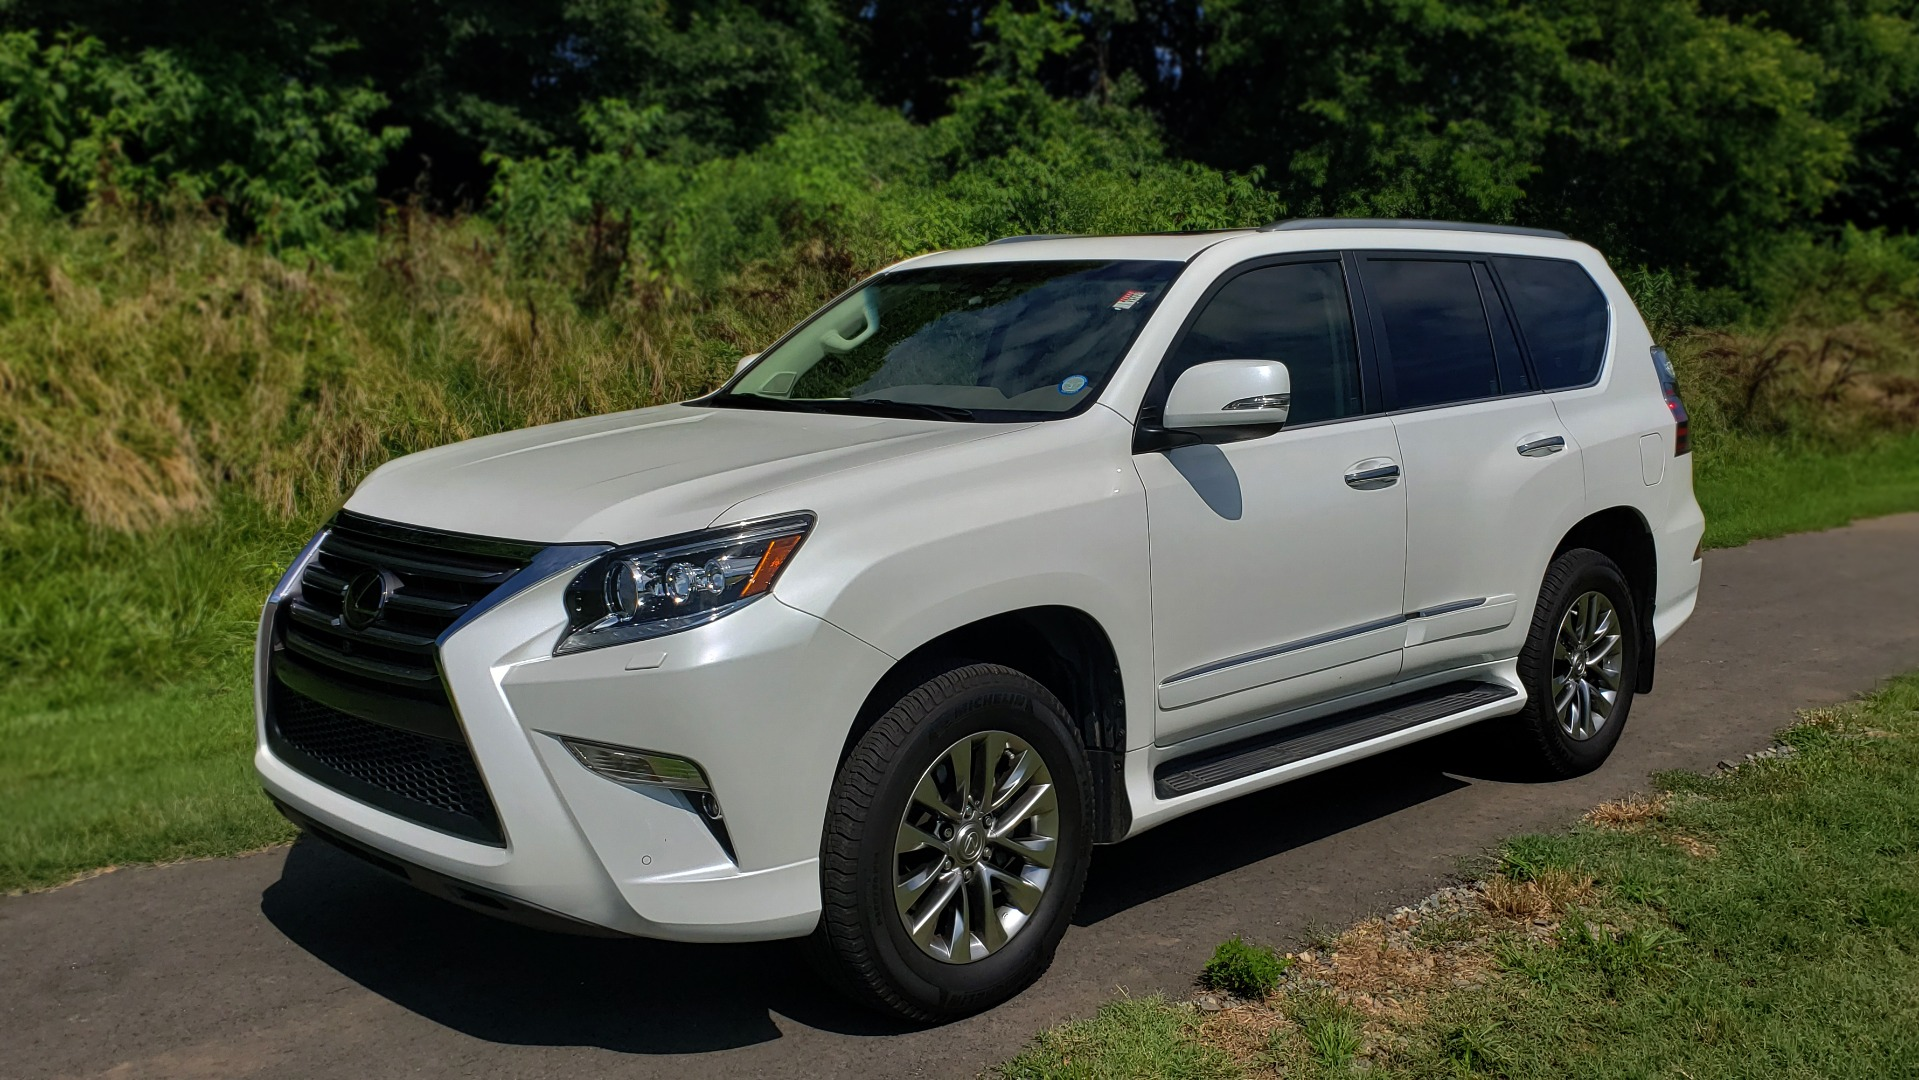 Used 2019 Lexus GX 460 LUXURY 4WD / DRVR SPRT PKG / MARK LEV SND / DYN CRUISE for sale Sold at Formula Imports in Charlotte NC 28227 1